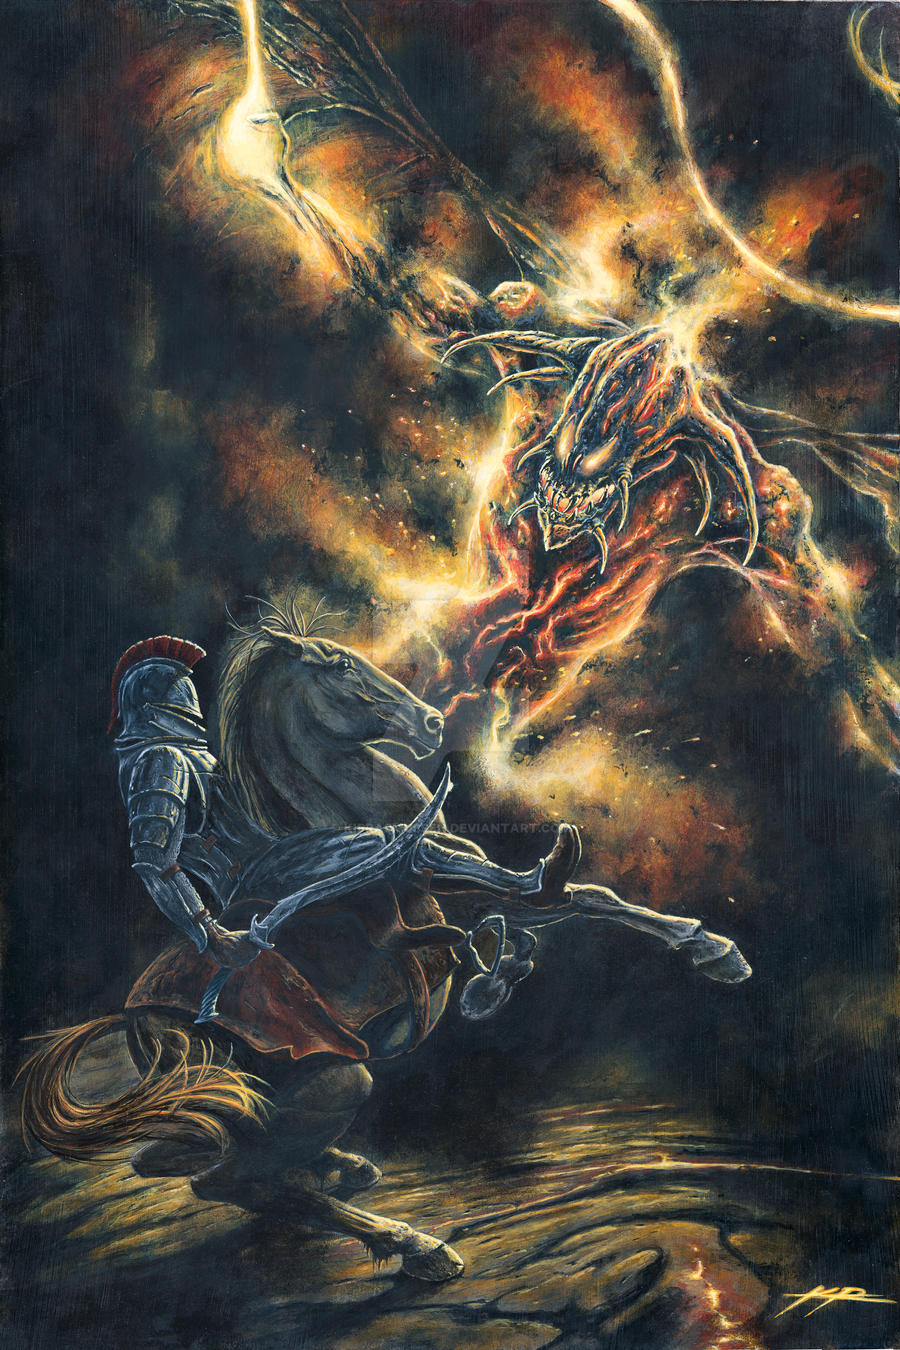 Gothmog vs Fingon, King of the Noldorin Elves by KipRasmussen on ... Gothmog Balrog